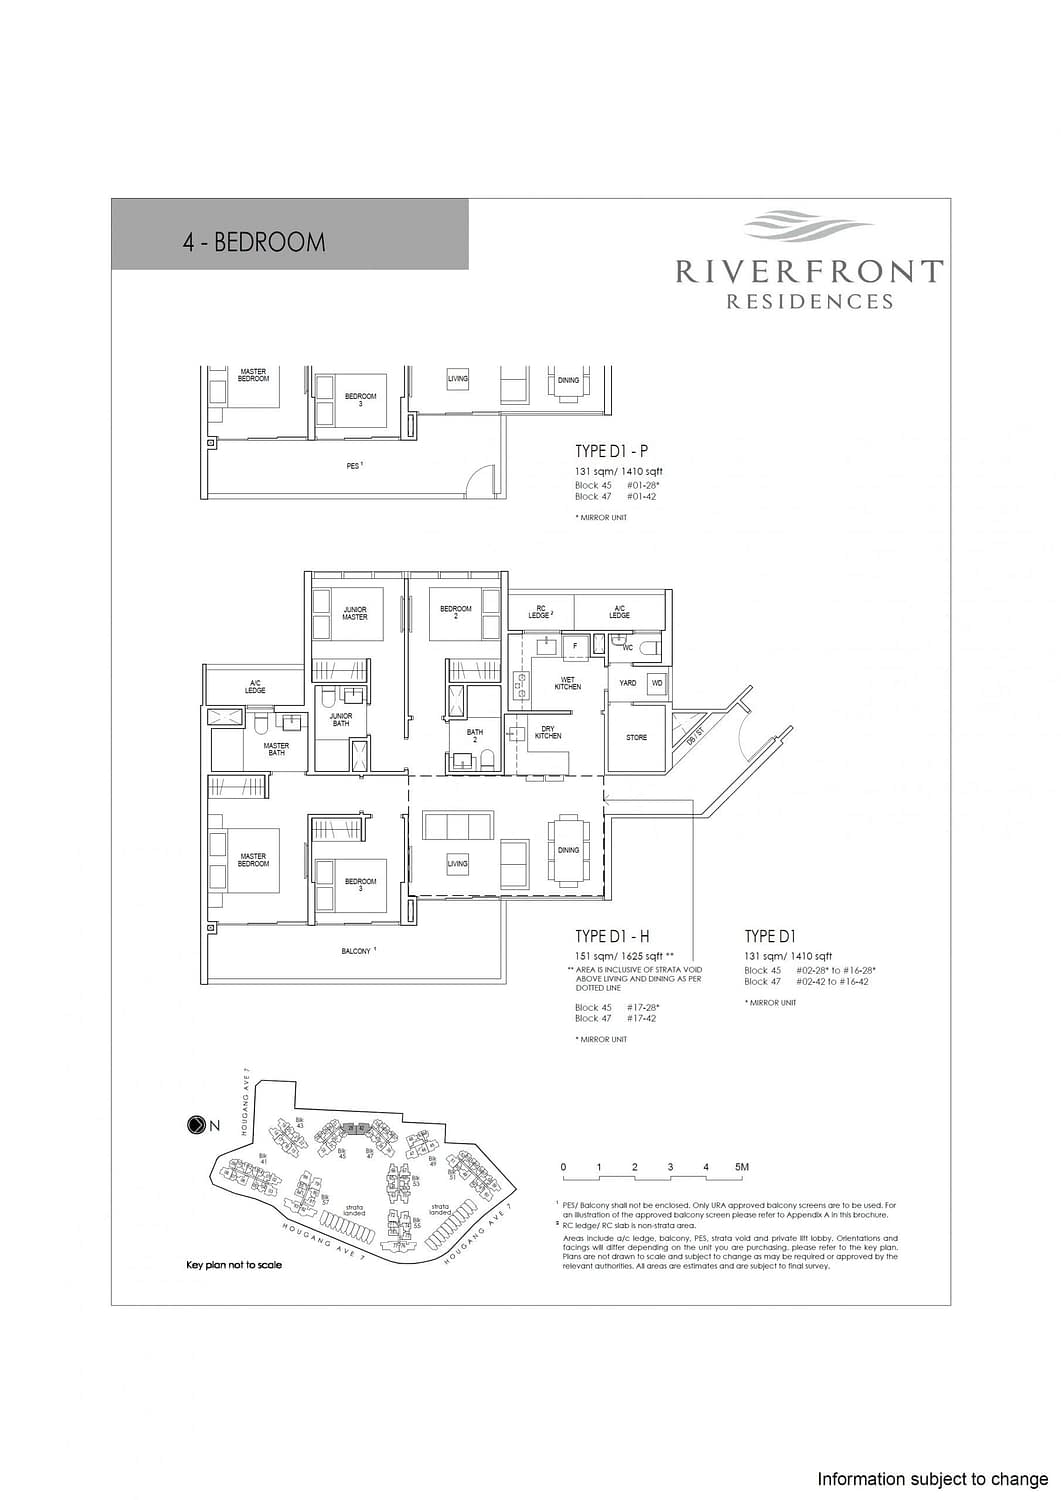 Riverfront Residences Riverfront Residences Floorplan D1 P scaled